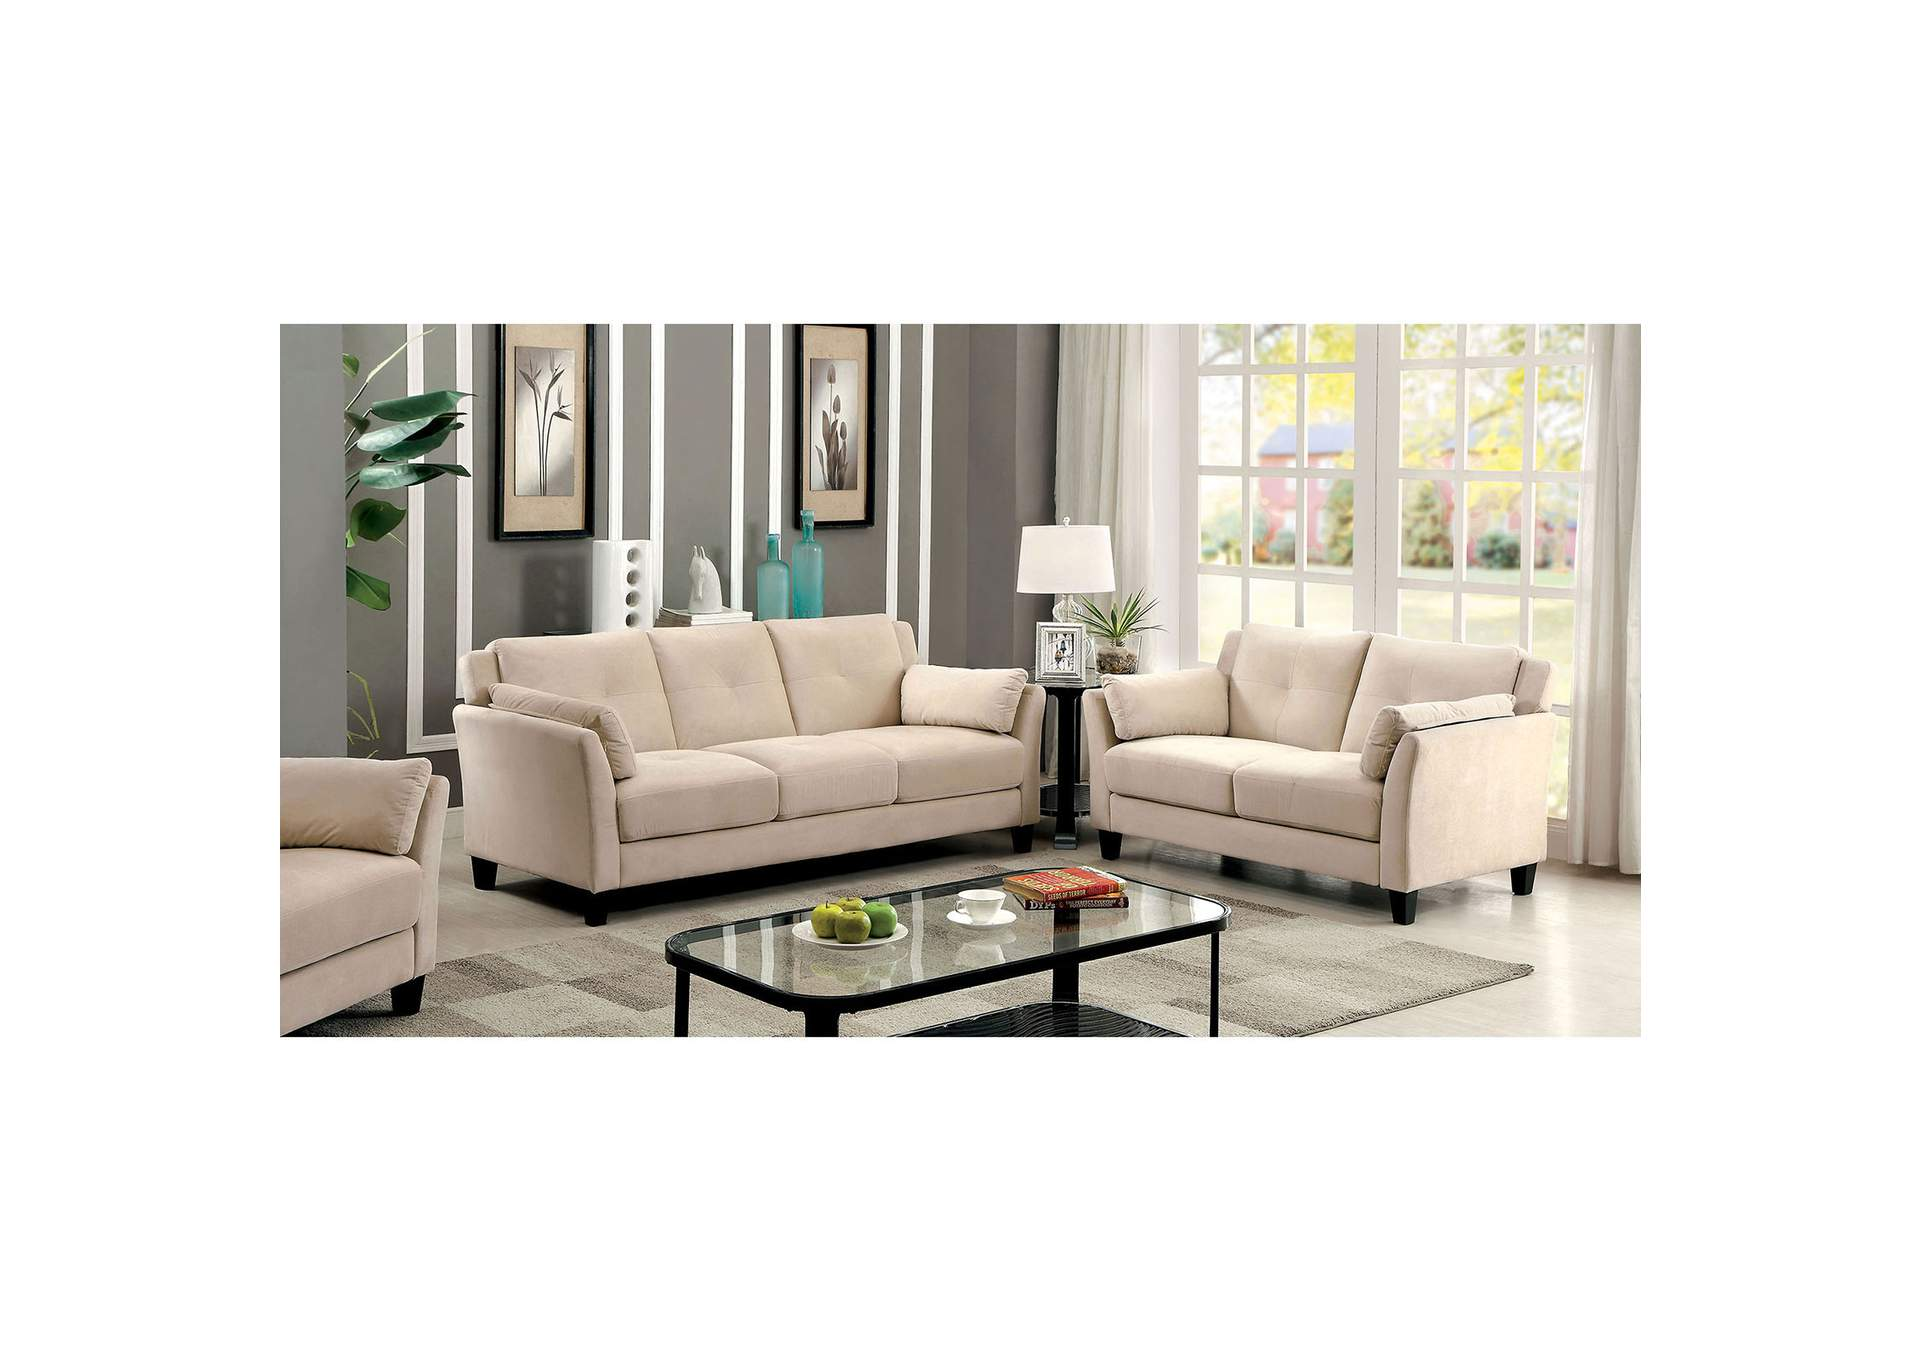 Add Charm Living Room Sets Ysabel Beige Sofa,Furniture of America